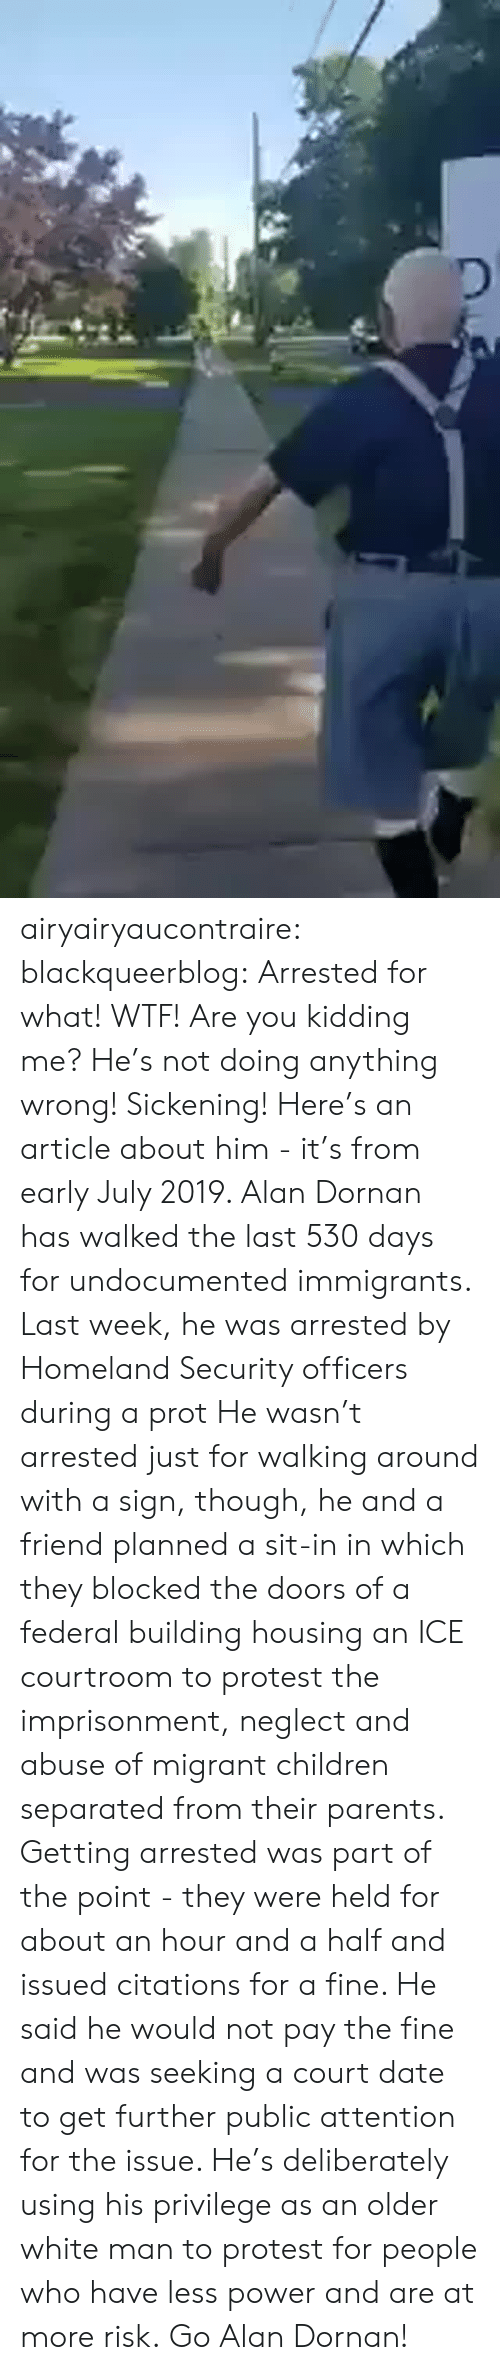 Homeland: airyairyaucontraire:  blackqueerblog:  Arrested for what! WTF! Are you kidding me? He's not doing anything wrong! Sickening!  Here's an article about him - it's from early July 2019.  Alan Dornan has walked the last 530 days for undocumented immigrants. Last week, he was arrested by Homeland Security officers during a prot He wasn't arrested just for walking around with a sign, though, he and a friend planned a sit-in in which they blocked the doors of a federal building housing an ICE courtroom to protest the imprisonment, neglect and abuse of migrant children separated from their parents.  Getting arrested was part of the point - they were held for about an hour and a half and issued citations for a fine. He said he would not pay the fine and was seeking a court date to get further public attention for the issue.  He's deliberately using his privilege as an older white man to protest for people who have less power and are at more risk. Go Alan Dornan!